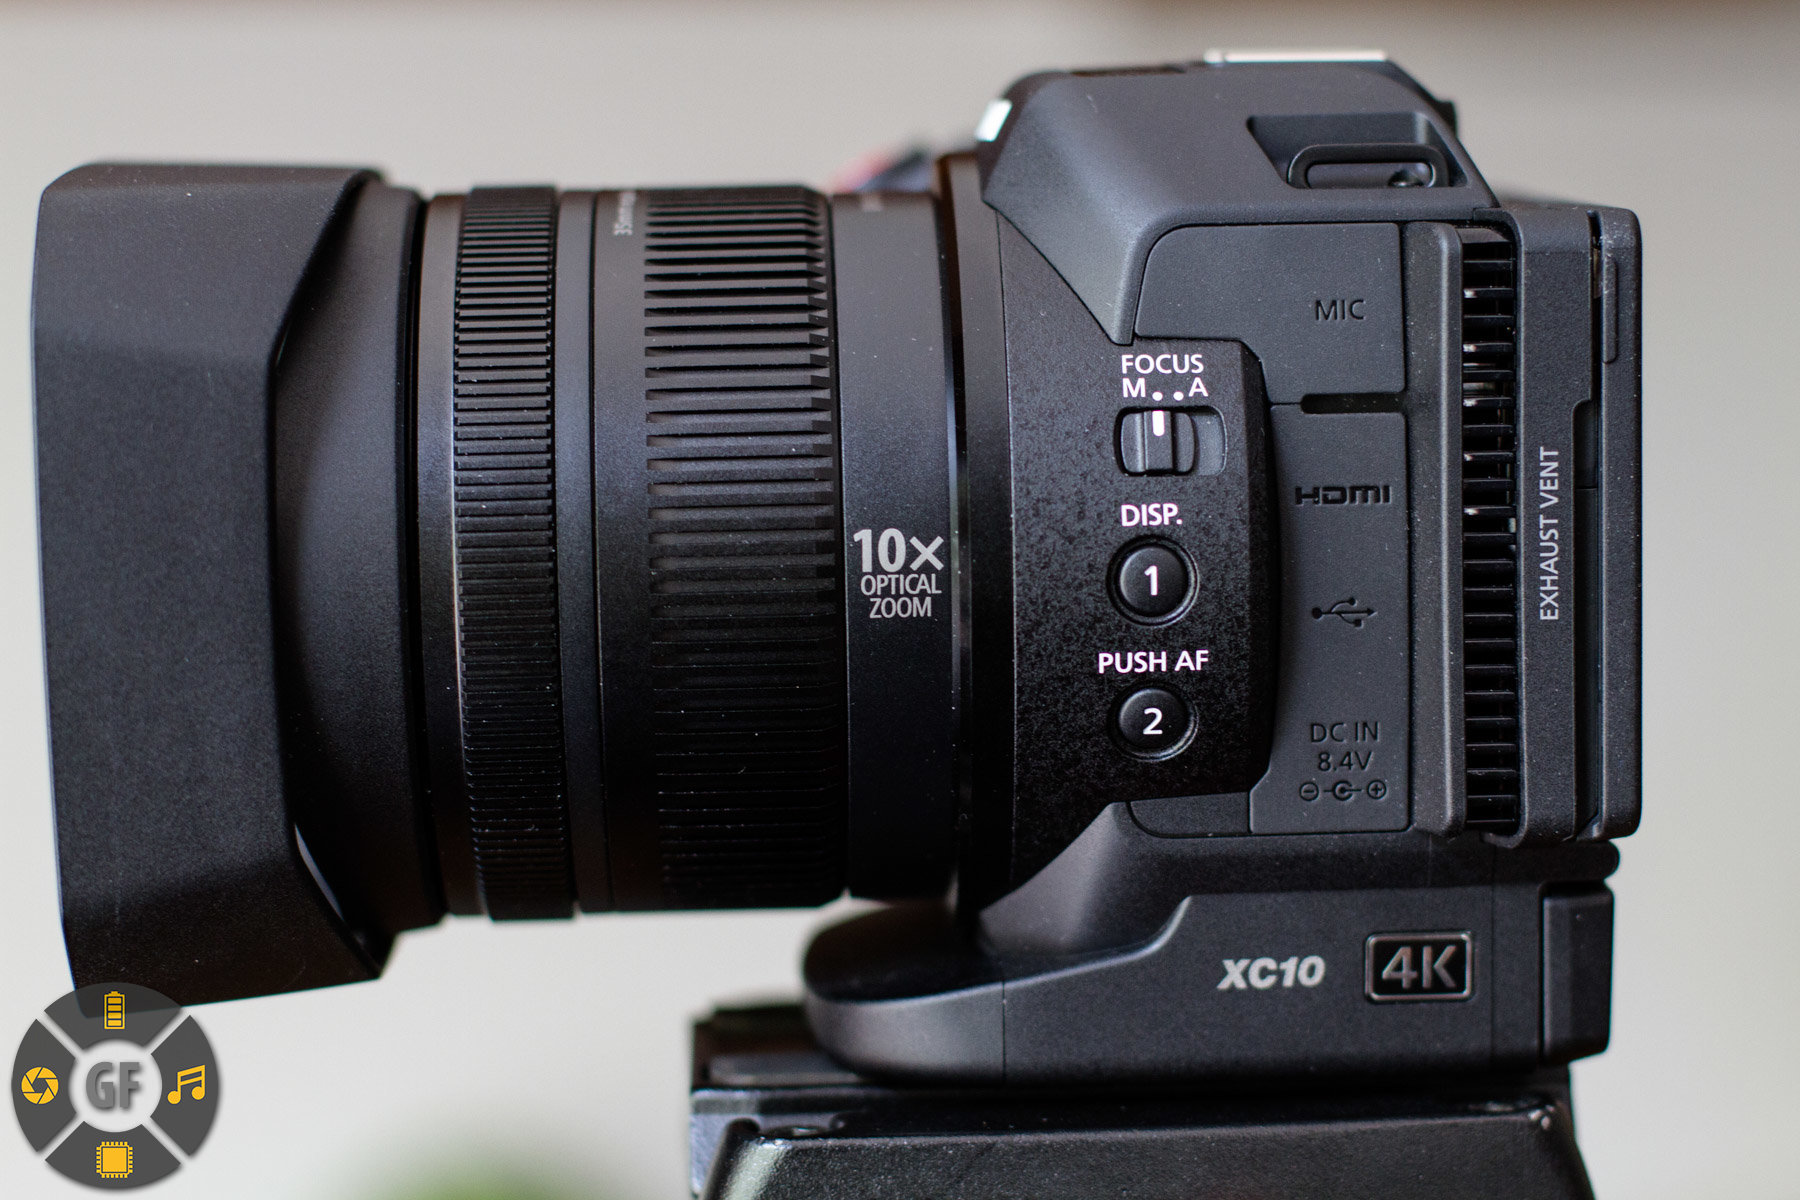 Canon XC10 extensive camera REVIEW